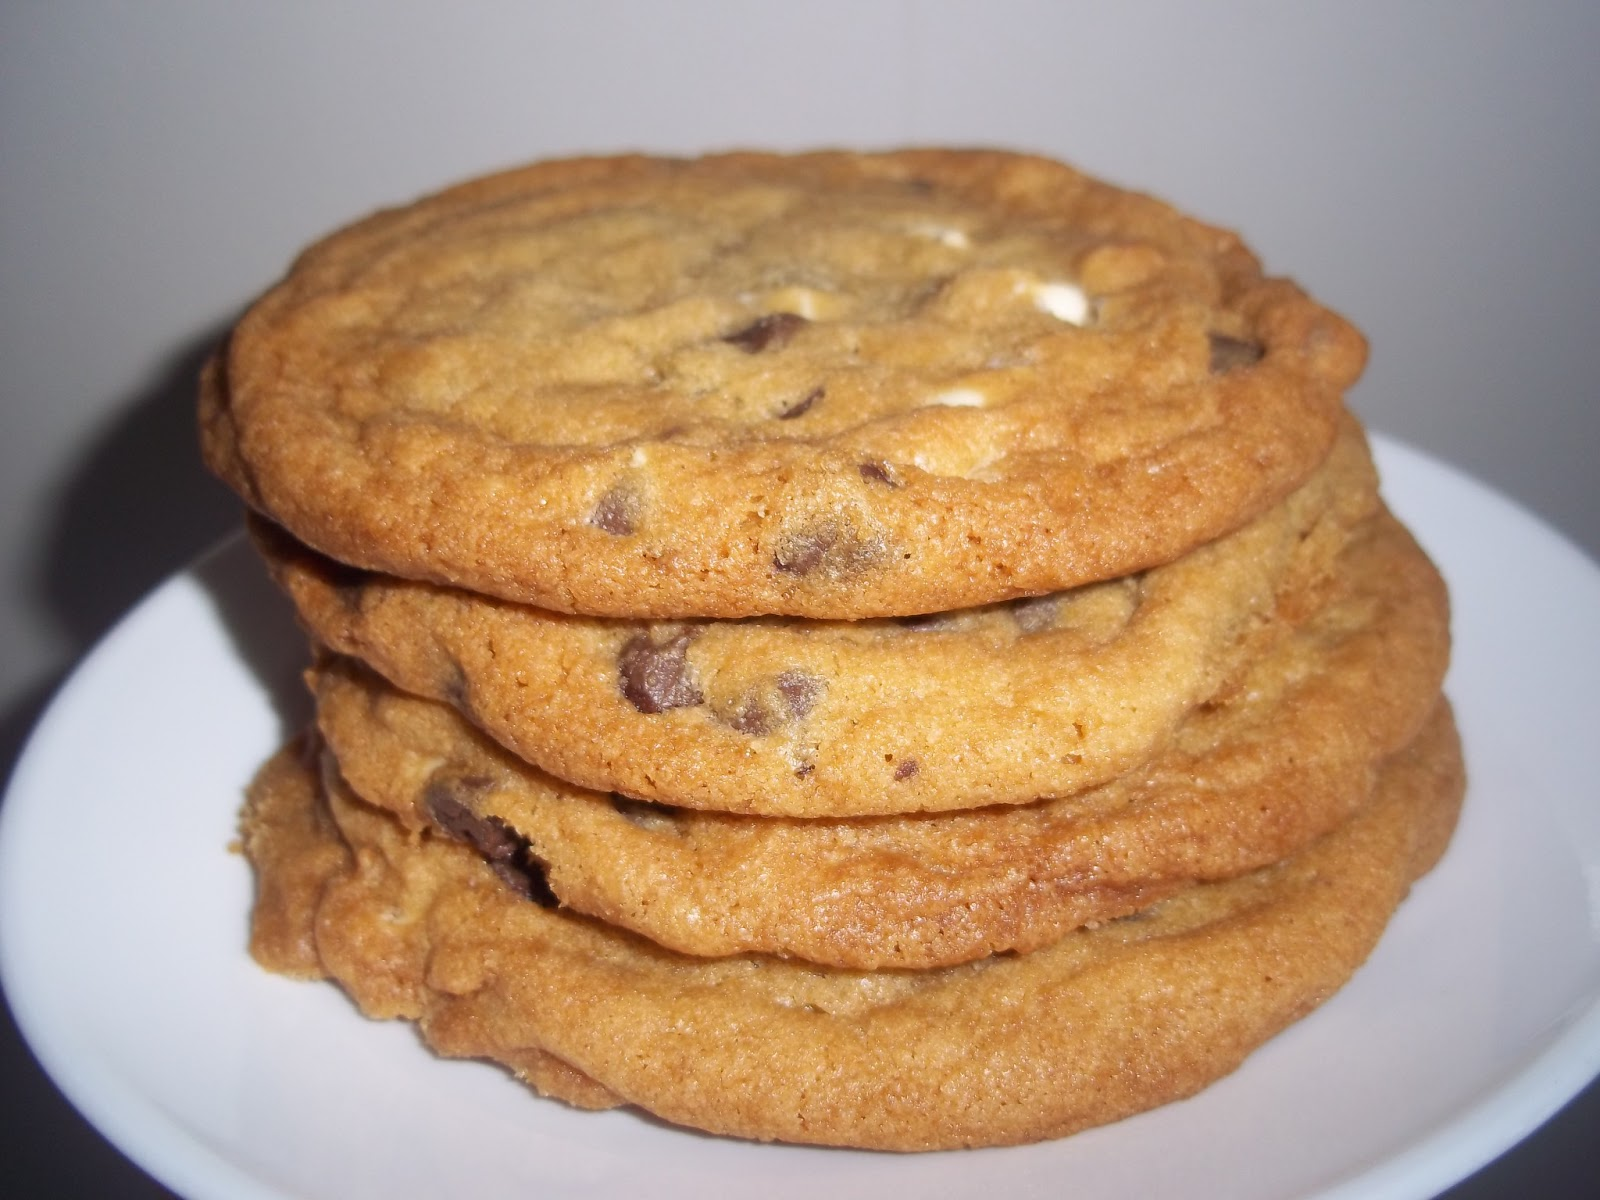 The Daily Smash: Soft and Chewy Chocolate Chip Cookies